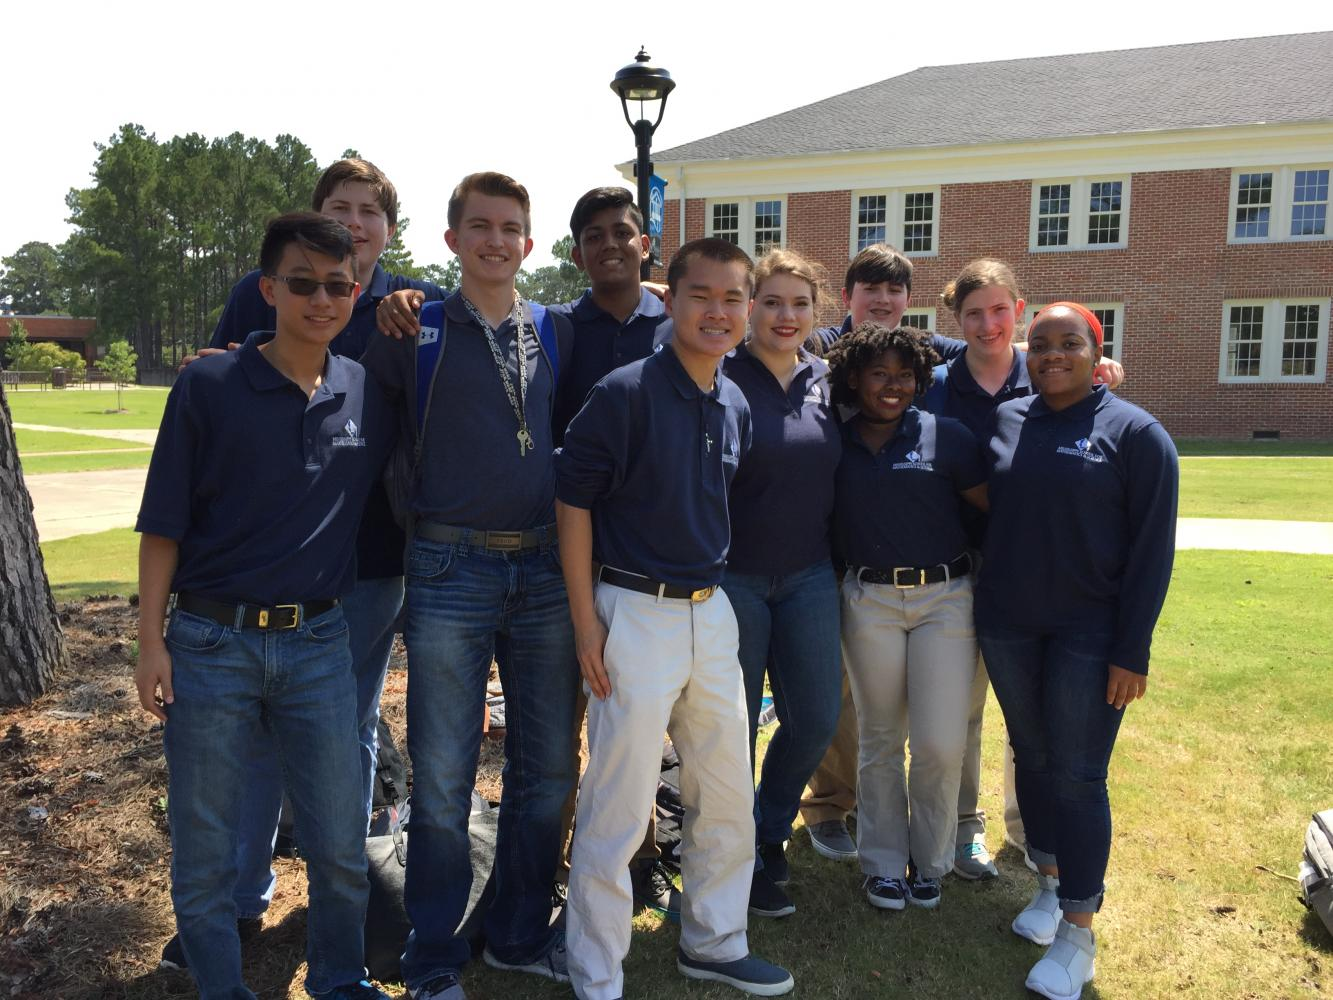 The newly formed robotics team stands outside Cophia-Lincoln Community College, awaiting the reveal of the